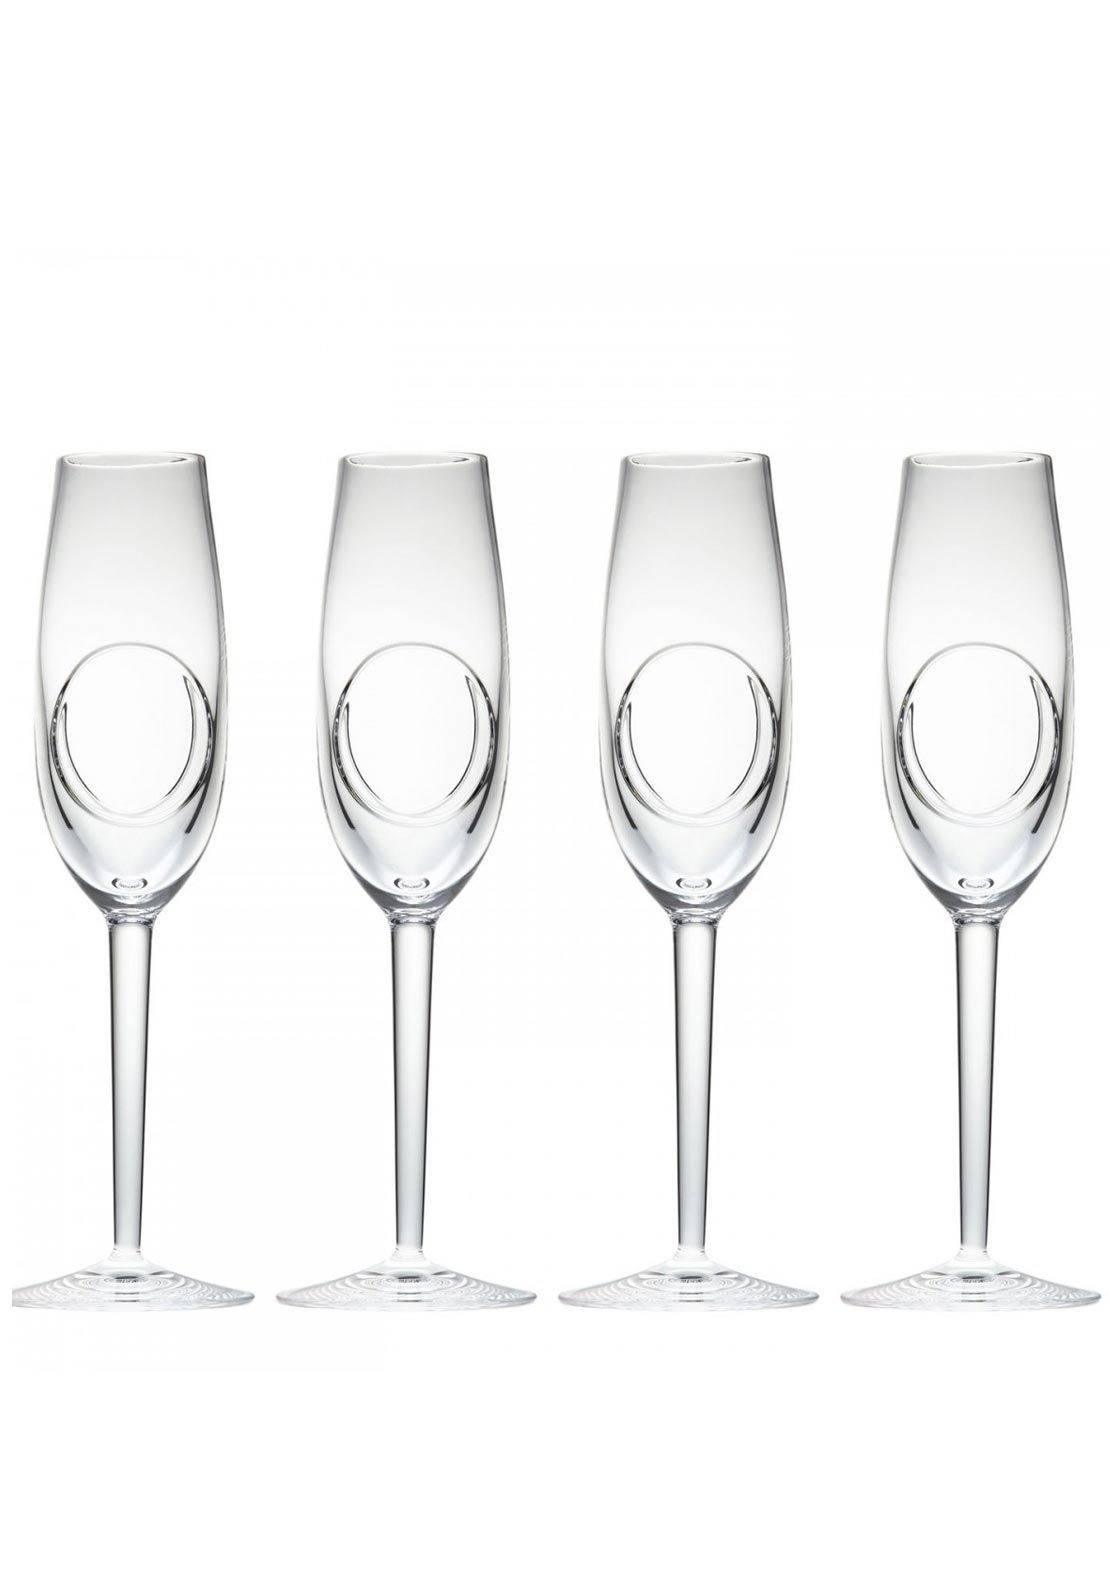 John Rocha at Waterford Circa Flute Glasses, Set of 4